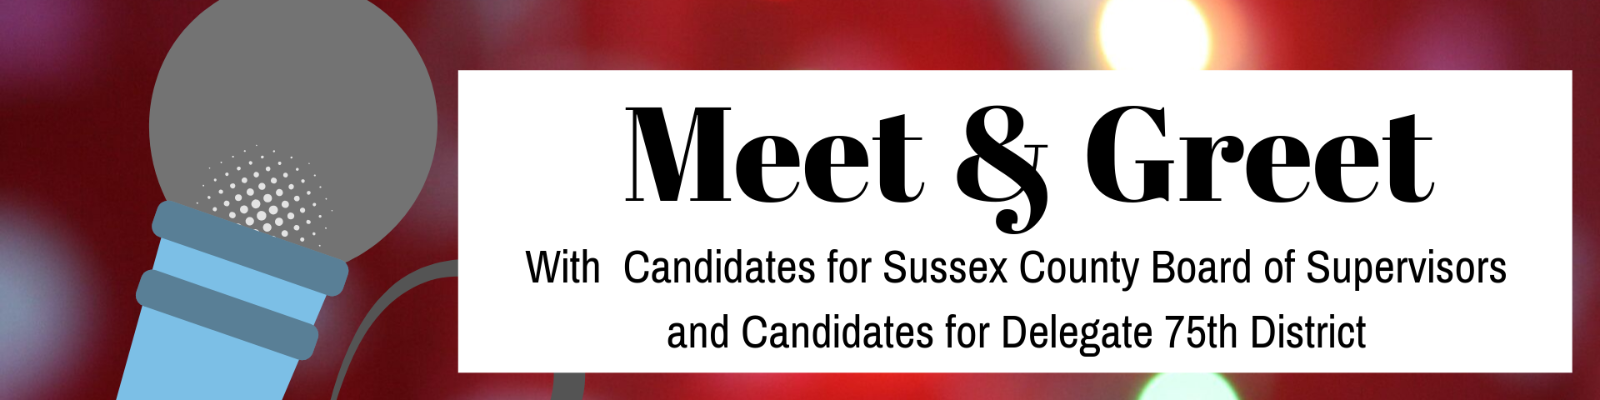 Meet & Greet with Candidates for Sussex Board of Supervisors and Candidates for Delegate in the 75th District